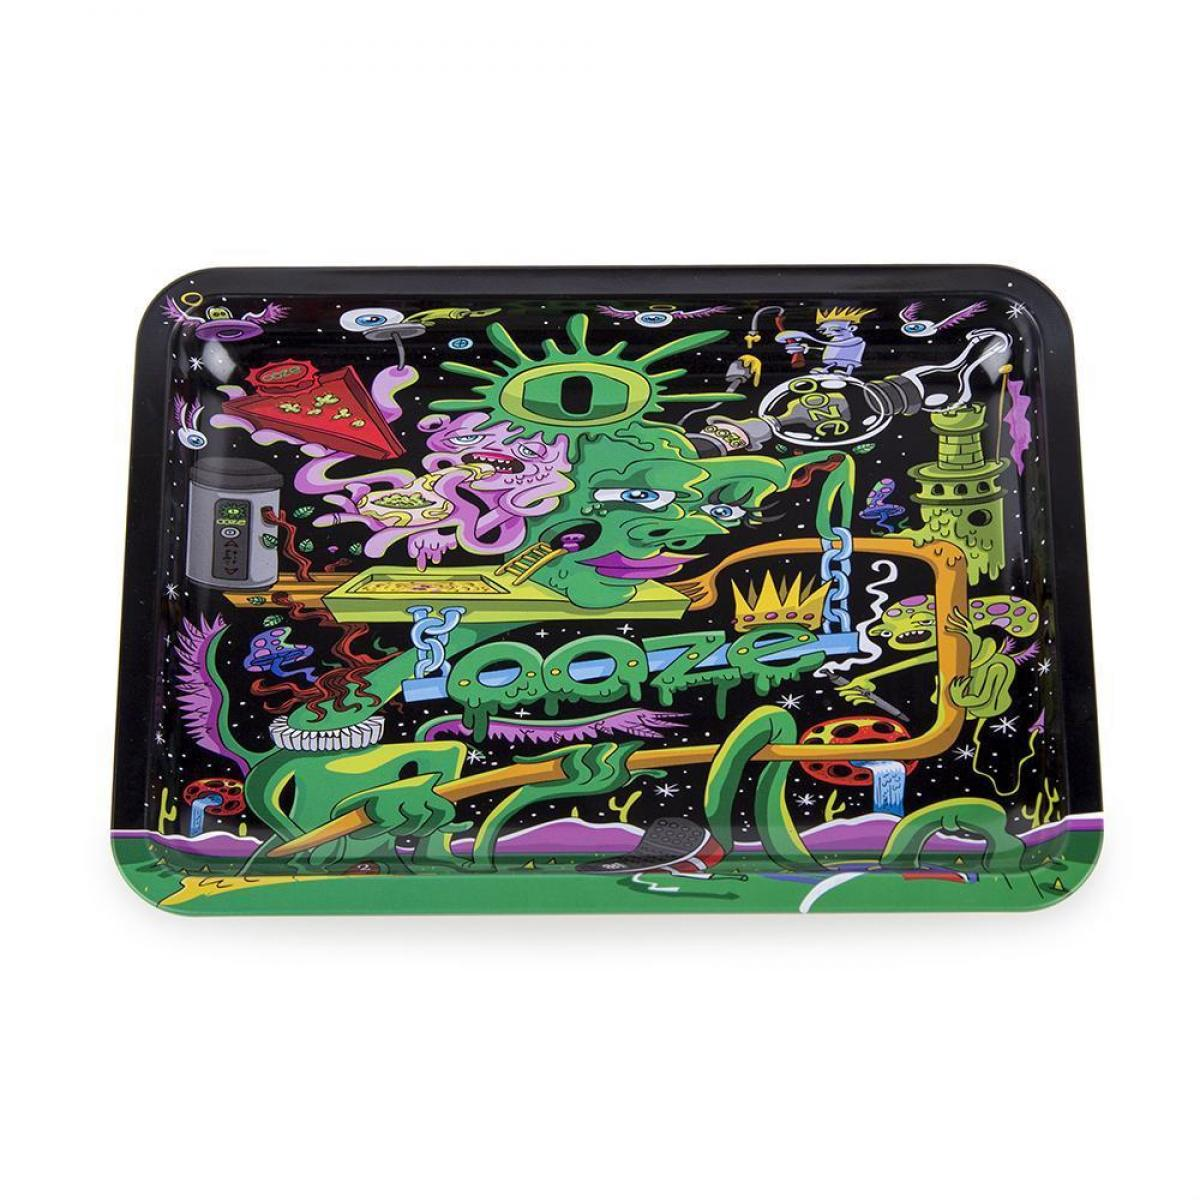 Ooze Rolling Tray - Black Factory - SMALL